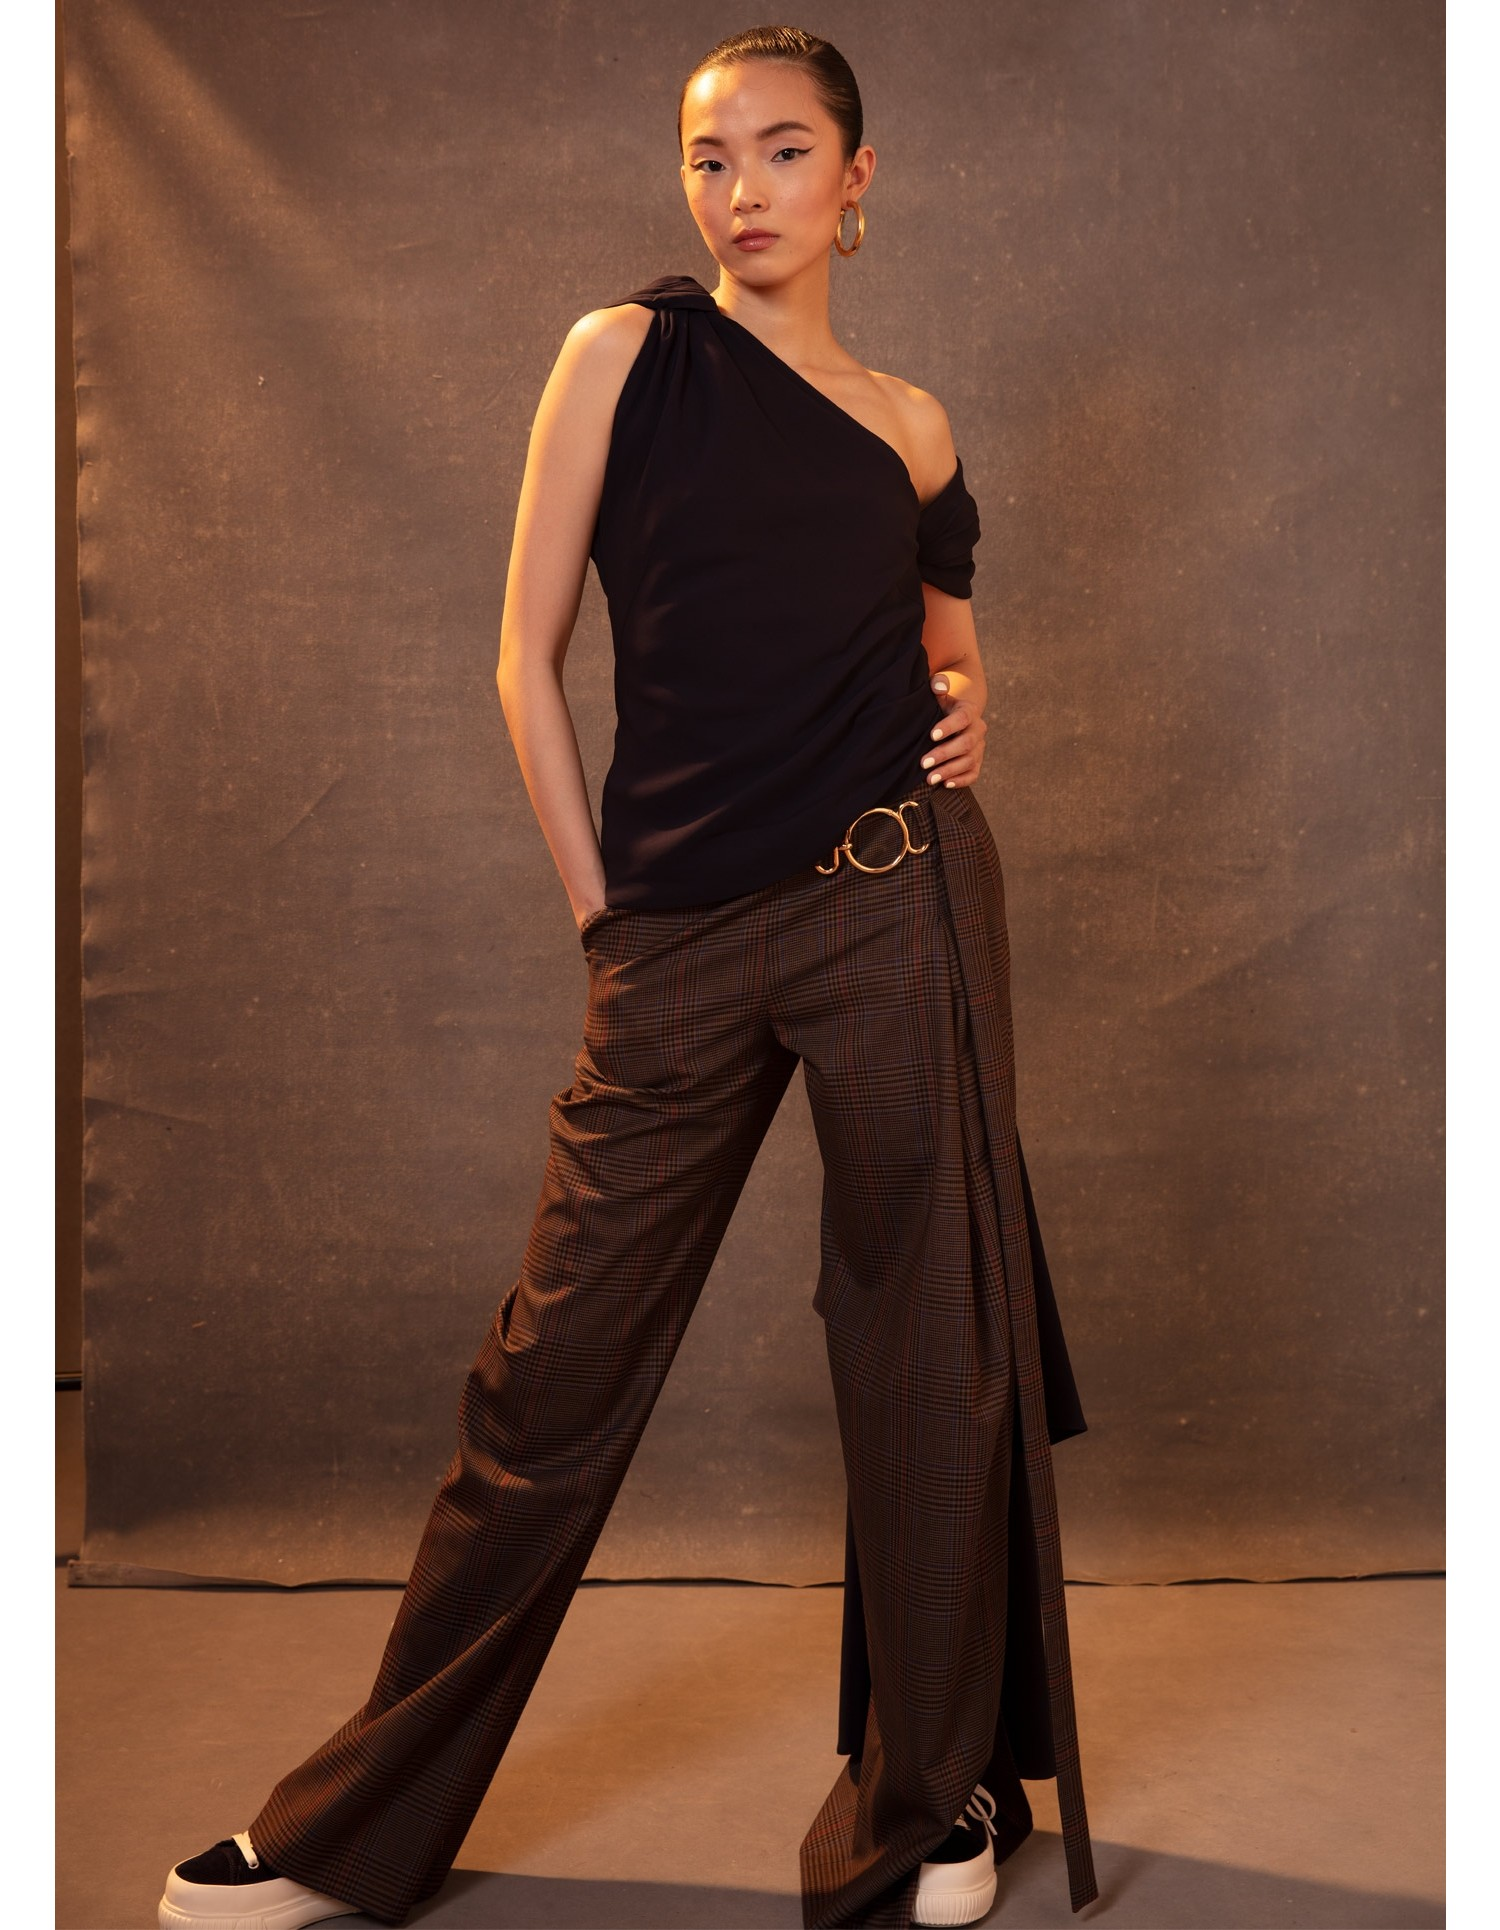 MONSE Plaid Vented Wide Leg Pant in Tan Multi on Model Front View